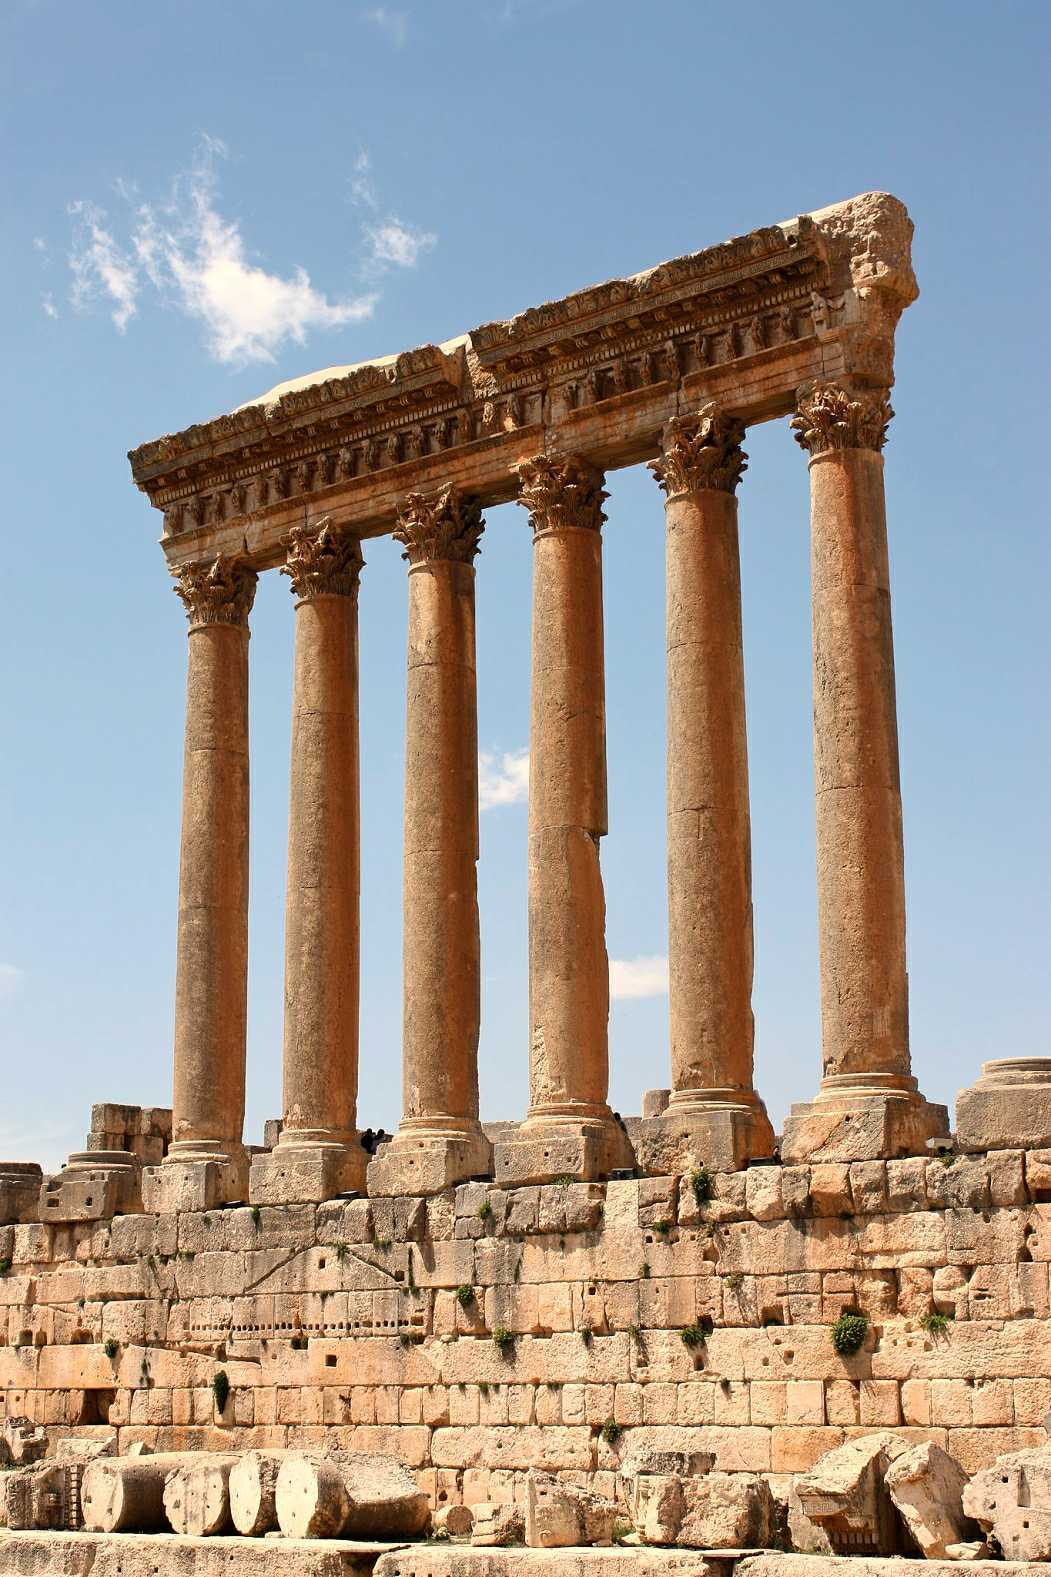 The temple of Jupiter in Baalbek temple complex, in Lebanon